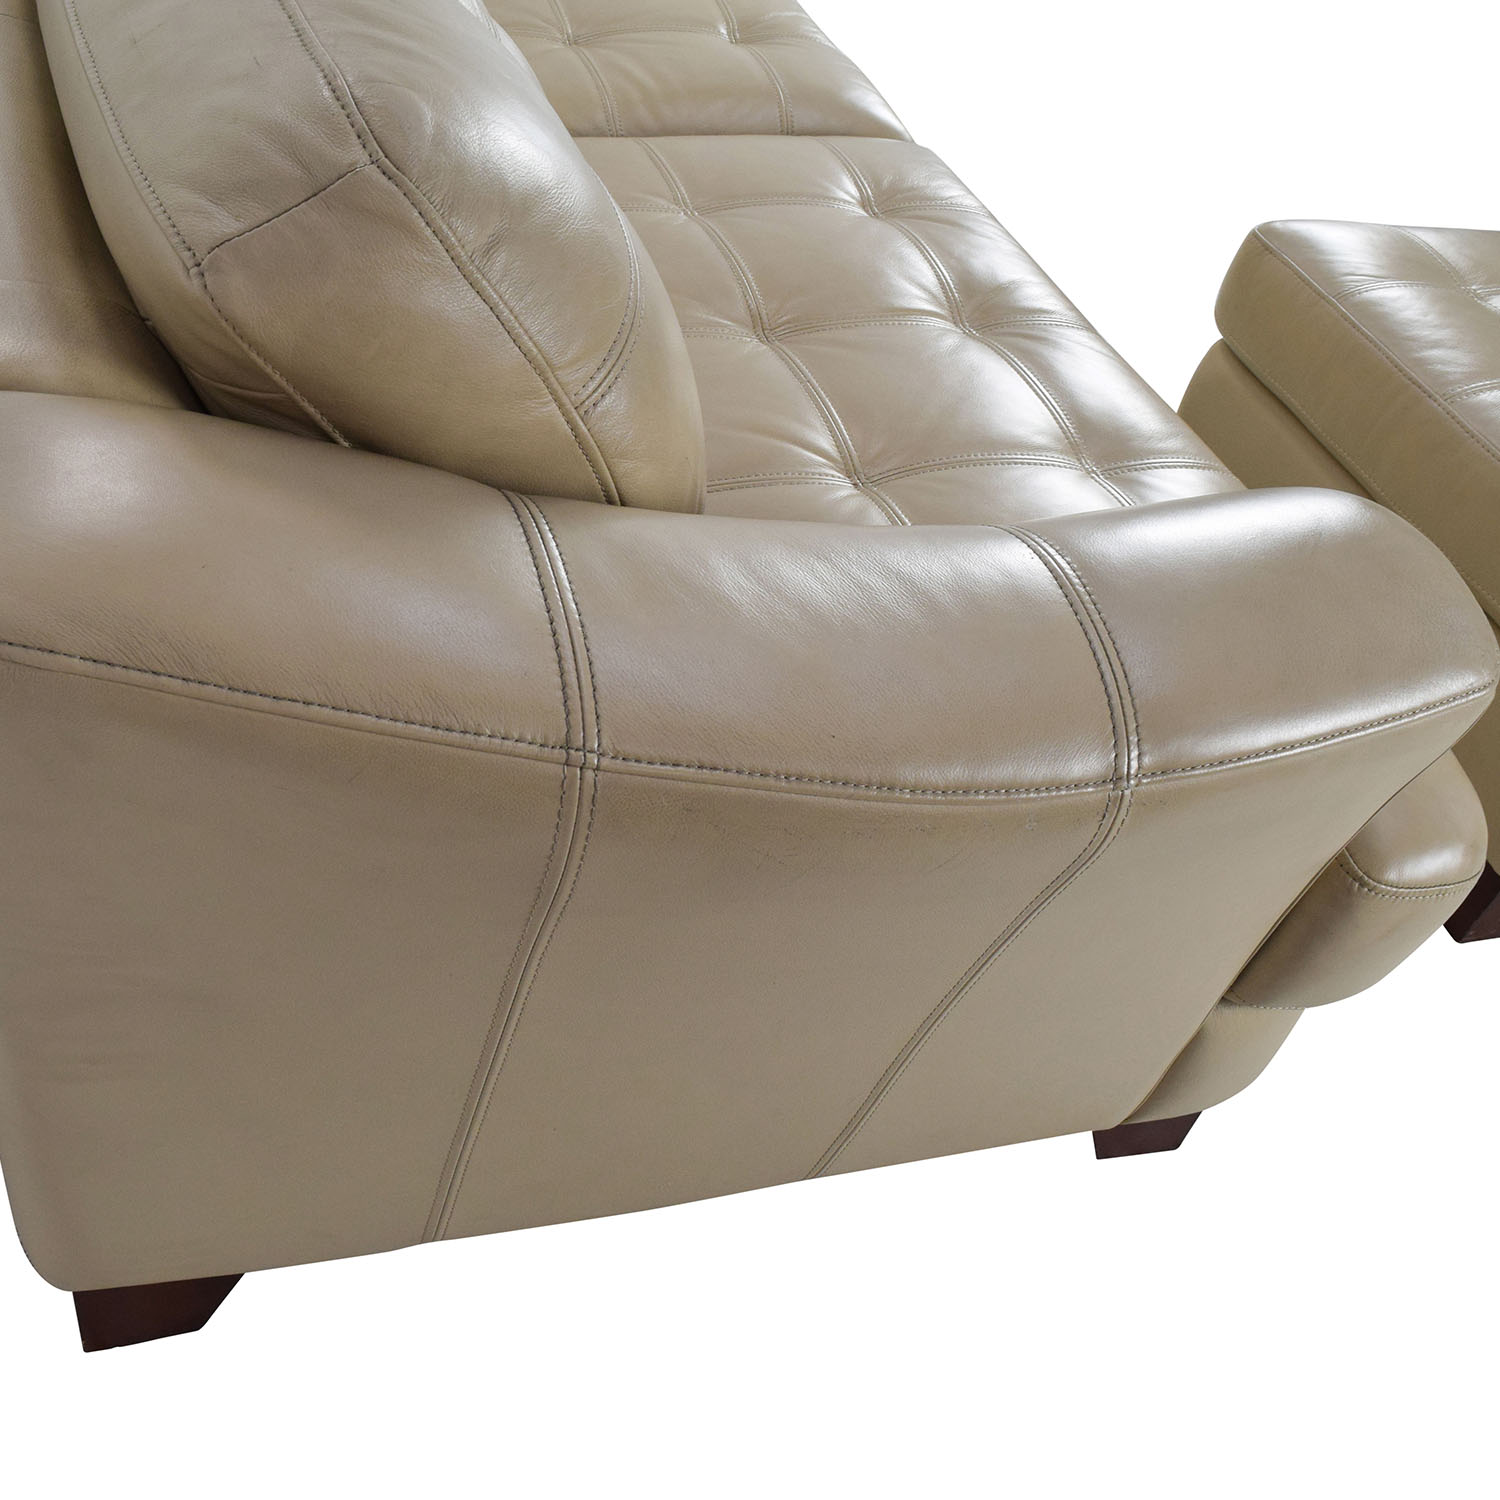 Bobs Furniture Leather Sofa No Phony Gimmicks Just Pure